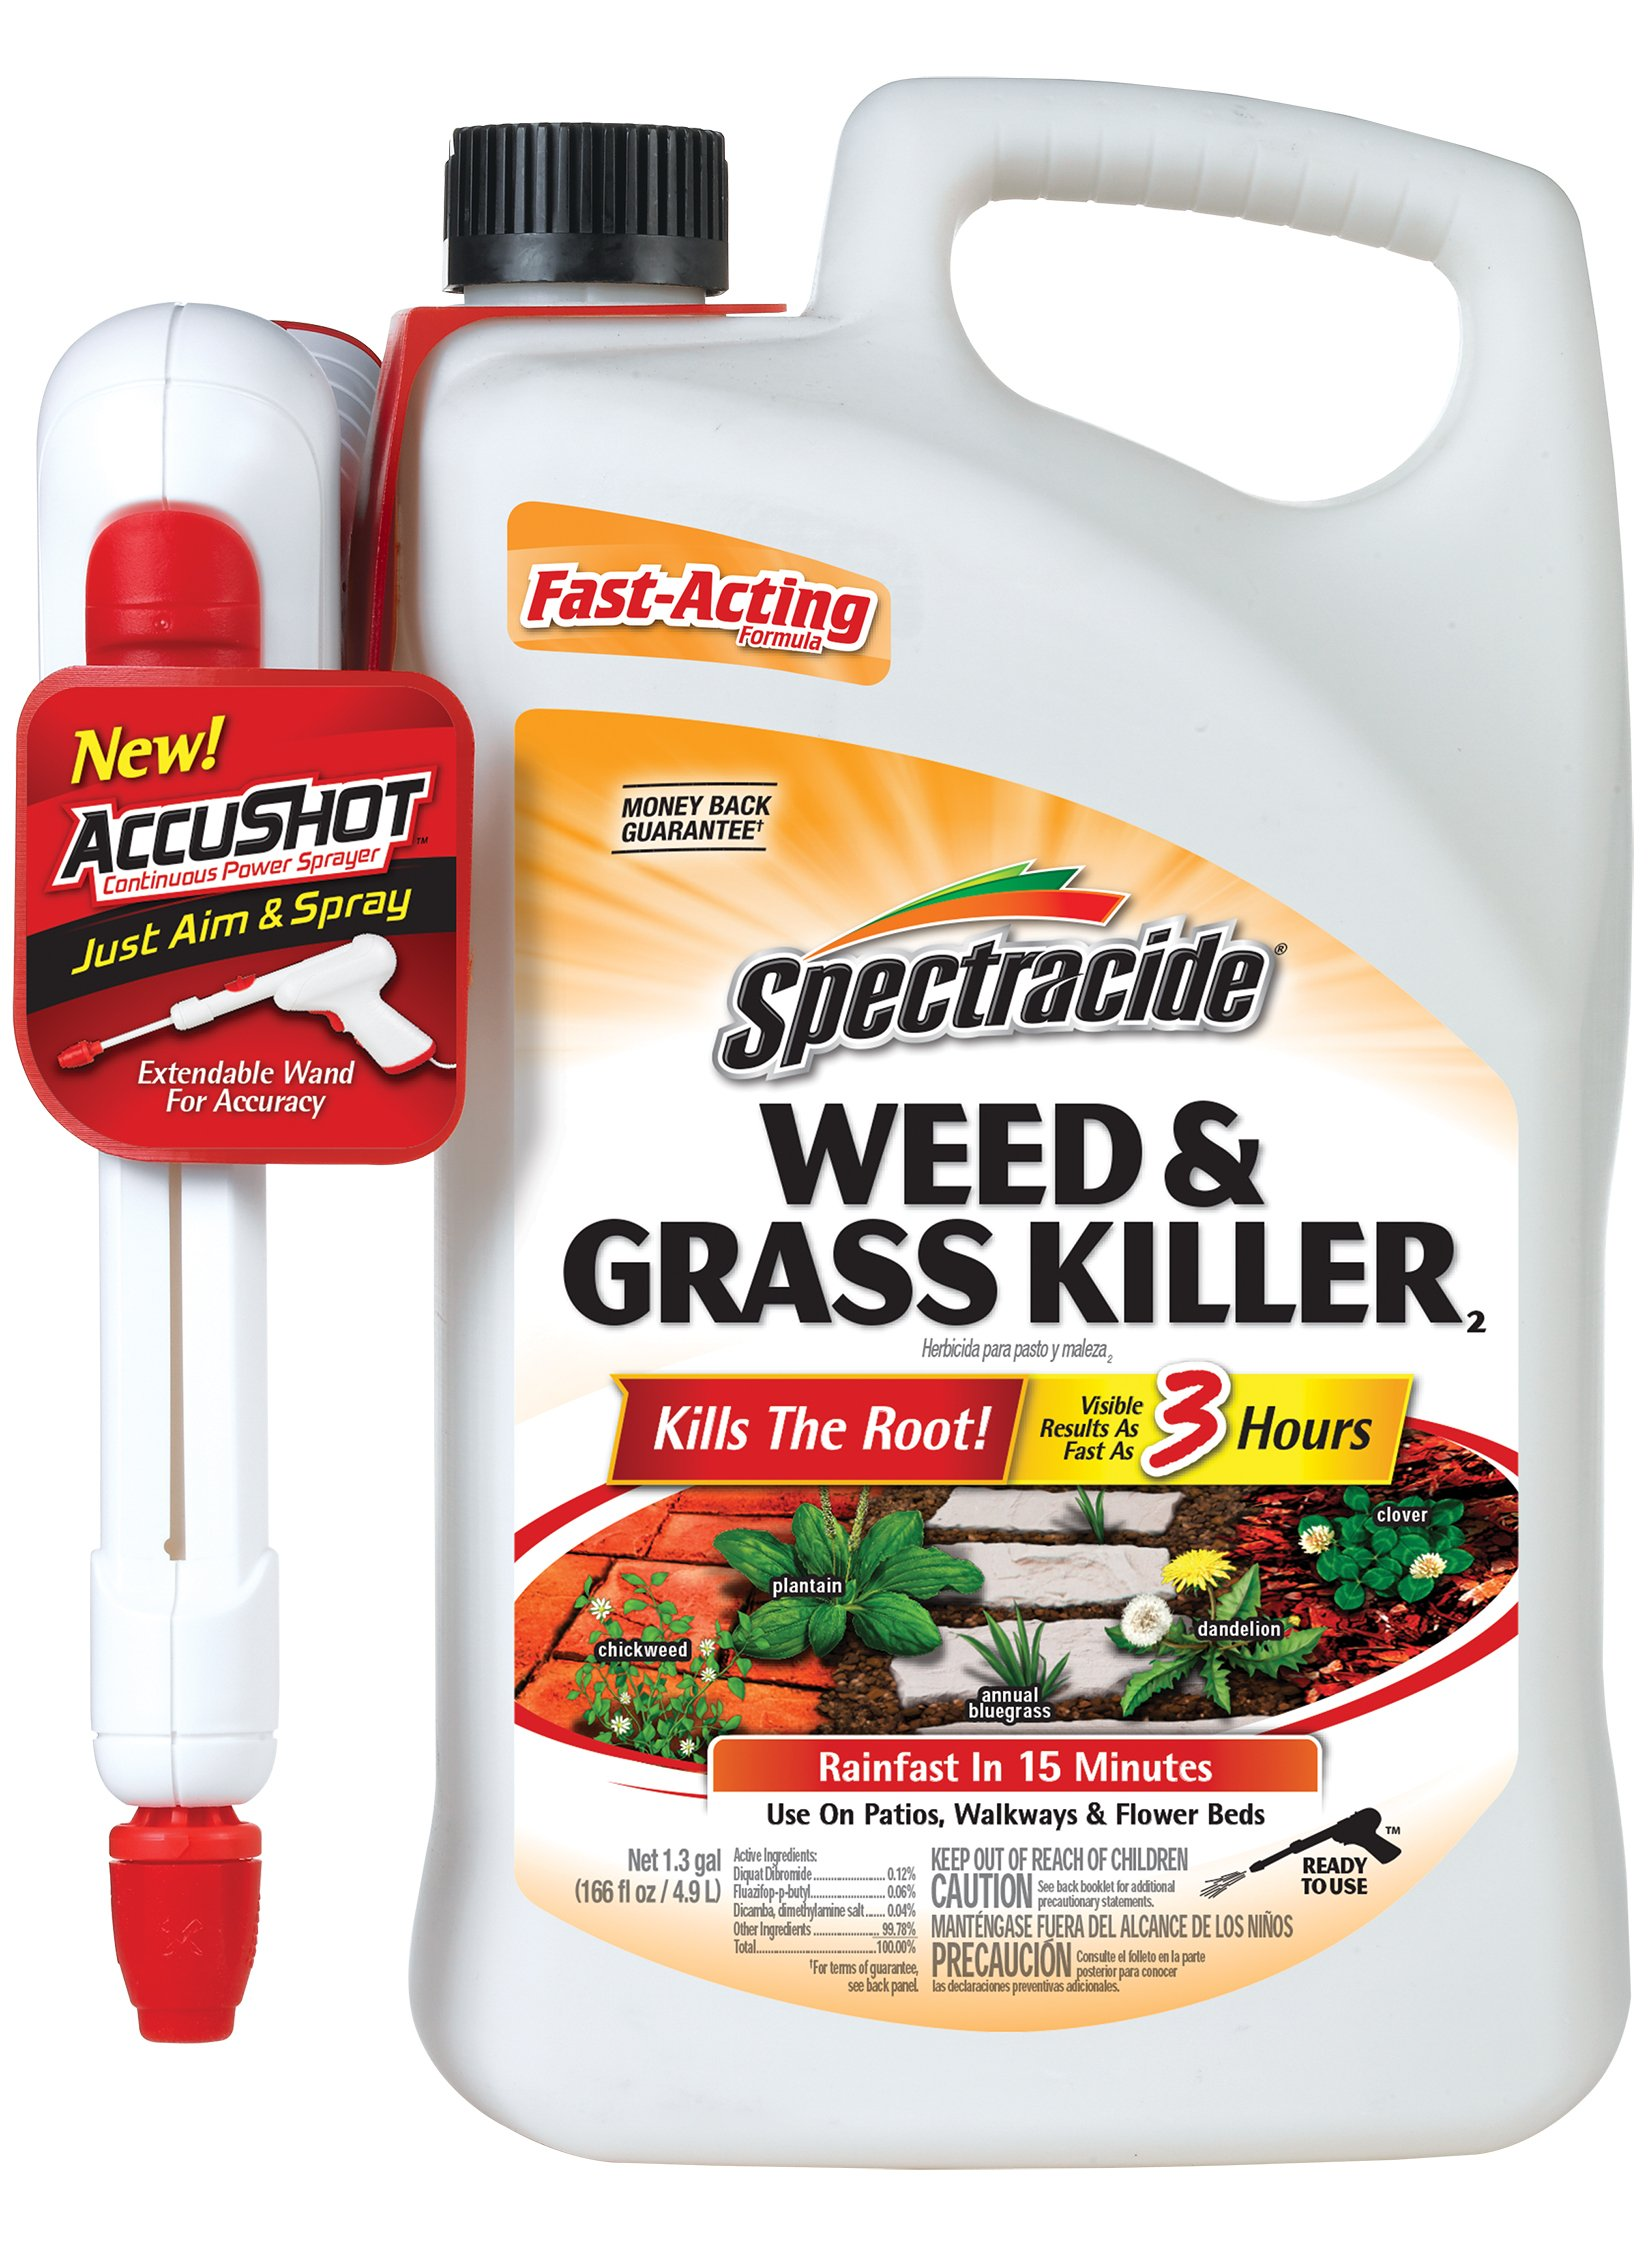 Spectracide Weed & Grass Killer2 (AccuShot Sprayer) by Spectracide (Image #1)